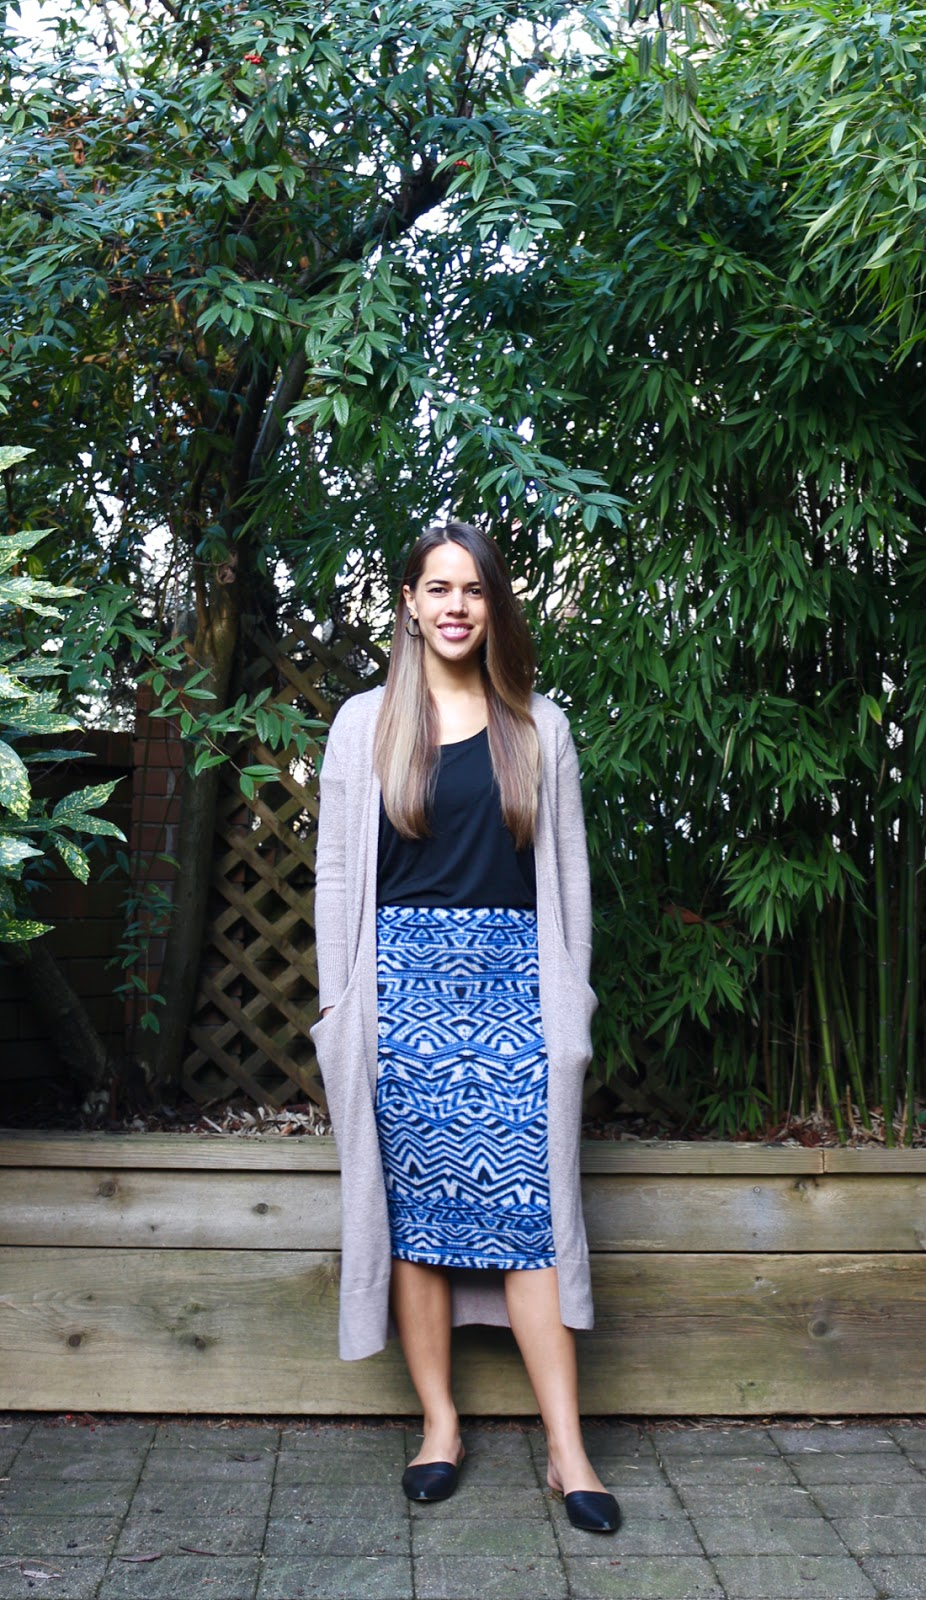 Jules in Flats - Duster Cardigan with Midi Skirt (Business Casual Spring Workwear on a Budget)